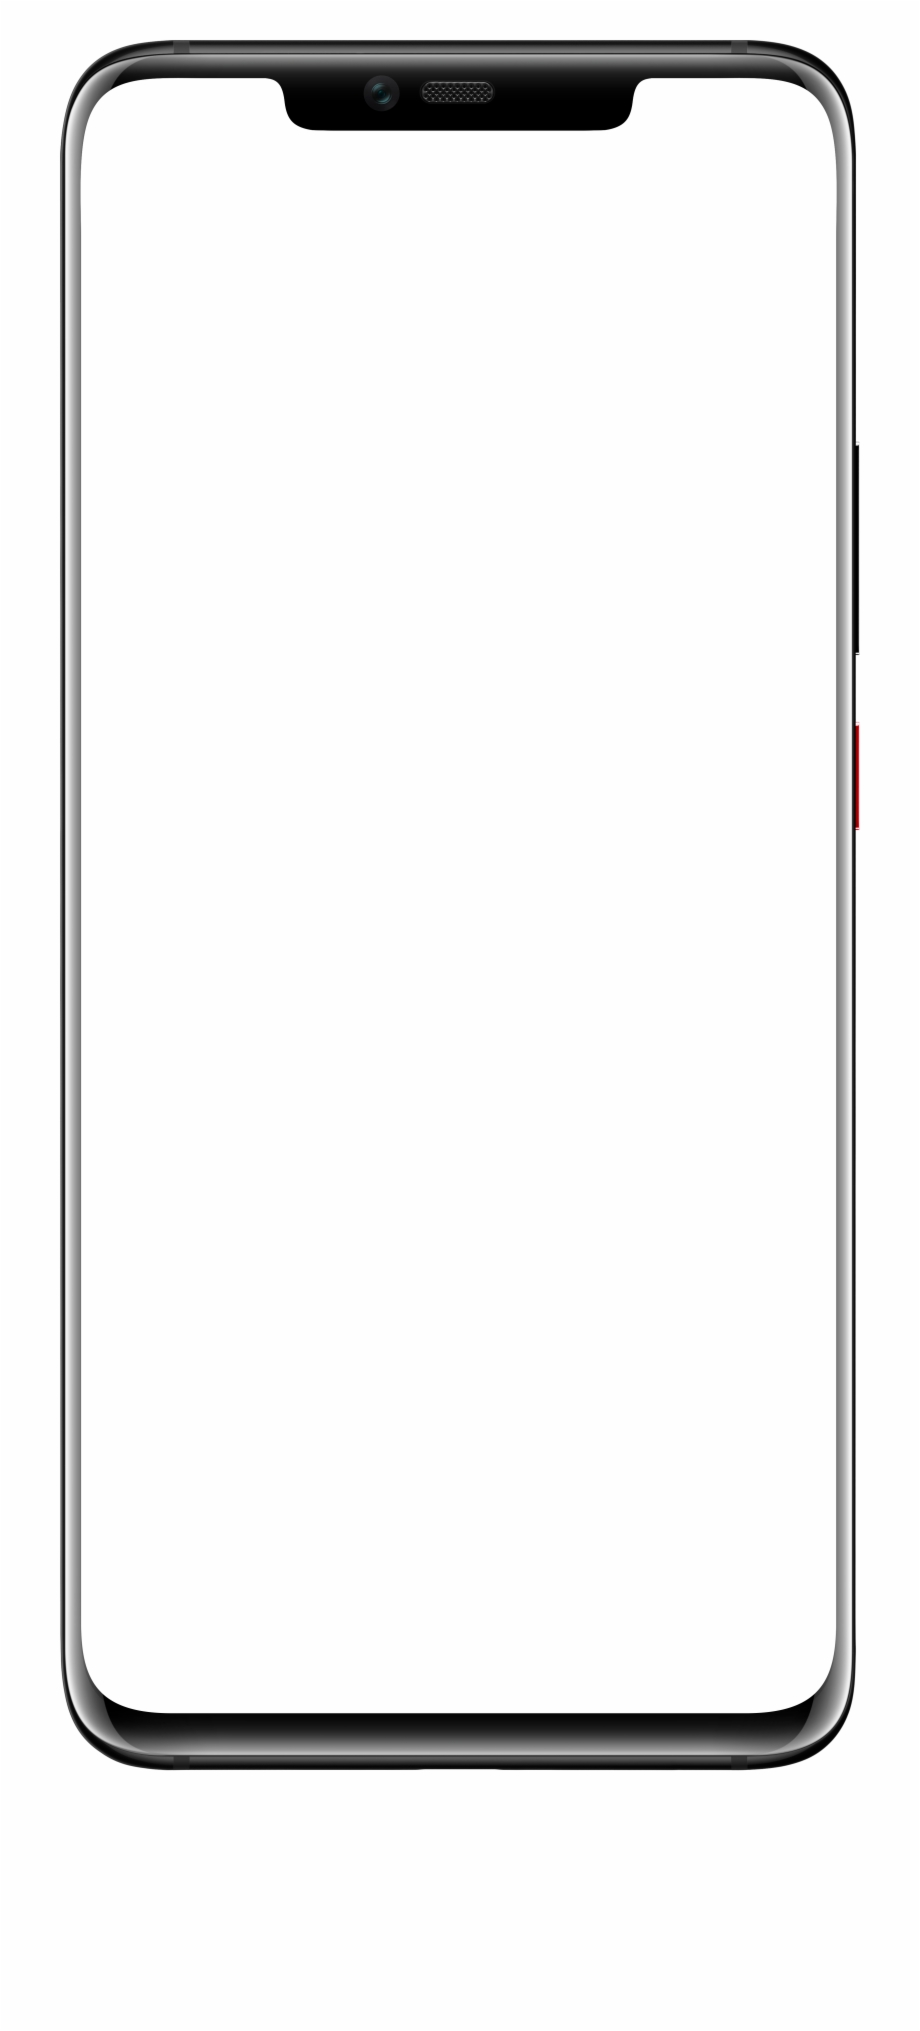 Galaxy s8 clipart svg black and white library Aesthetic Clipart Phone Screen - Samsung Galaxy S8 Outline ... svg black and white library